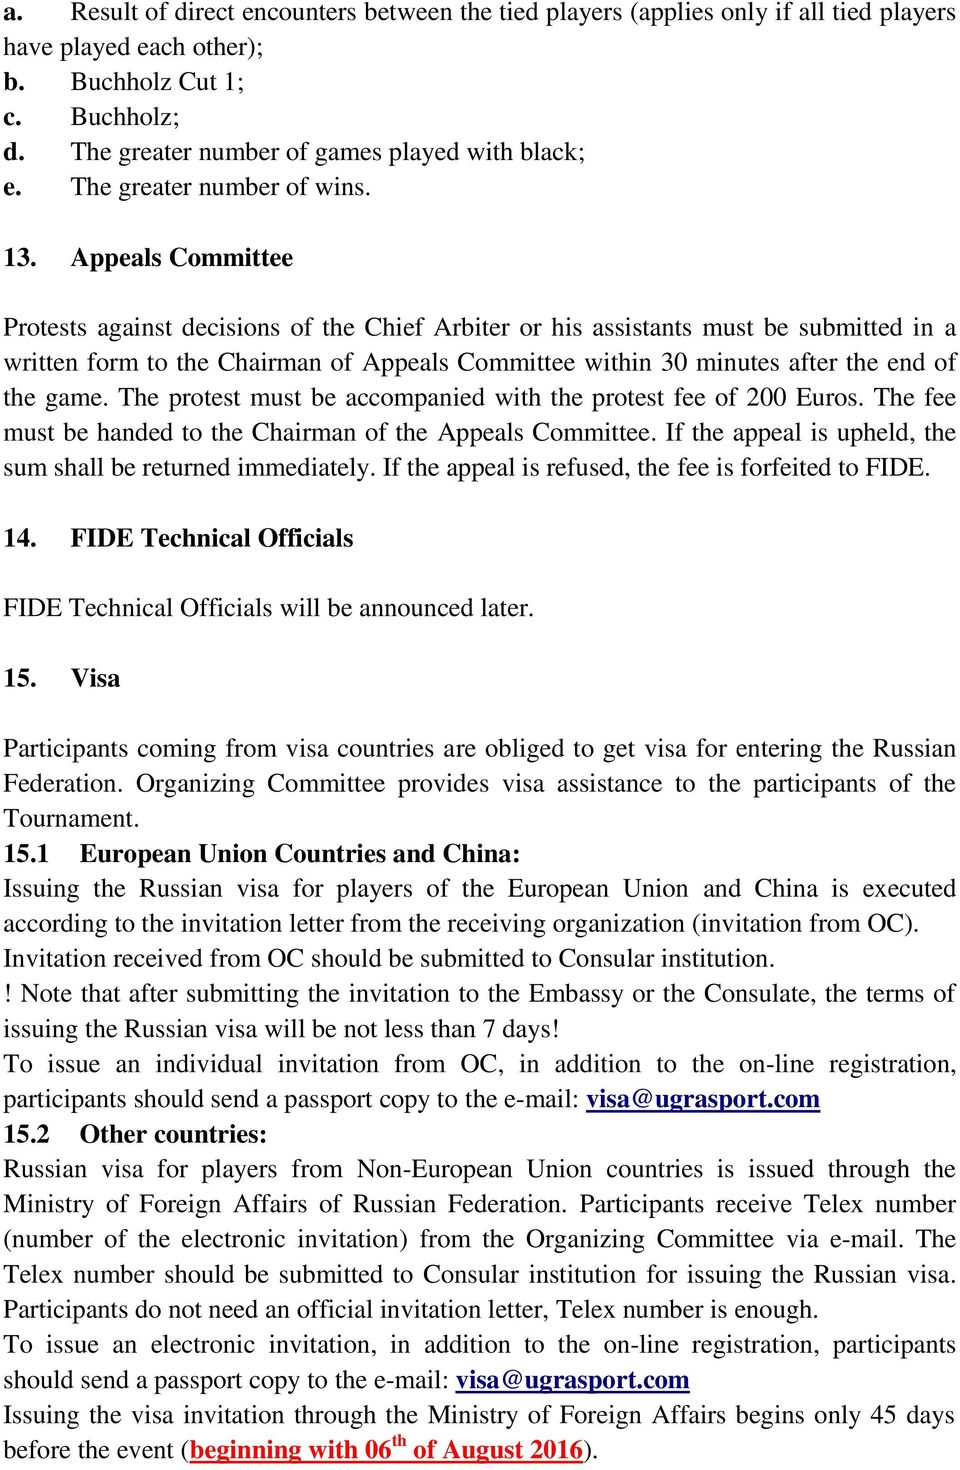 Appeals Committee Protests against decisions of the Chief Arbiter or his assistants must be submitted in a written form to the Chairman of Appeals Committee within 30 minutes after the end of the